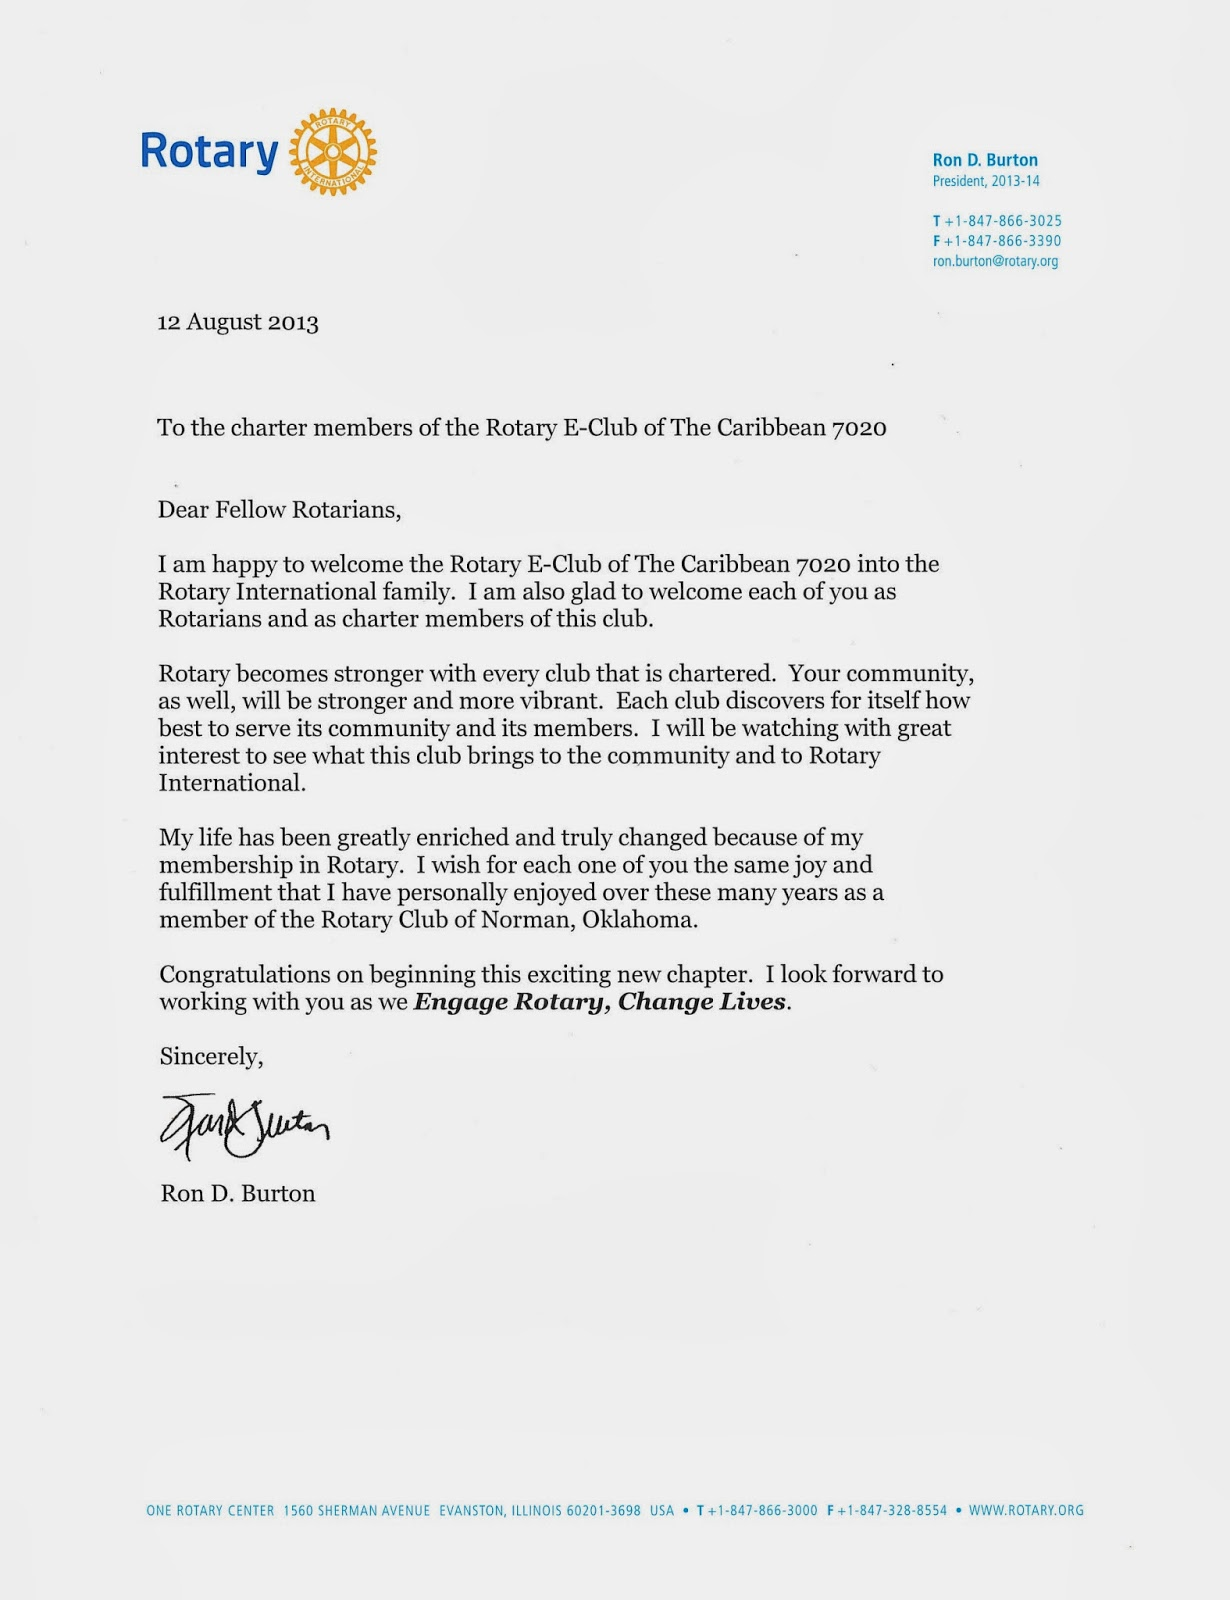 Membership resignation letters template 8 free word dos and don 39 sample of resignation letter thecheapjerseys Image collections